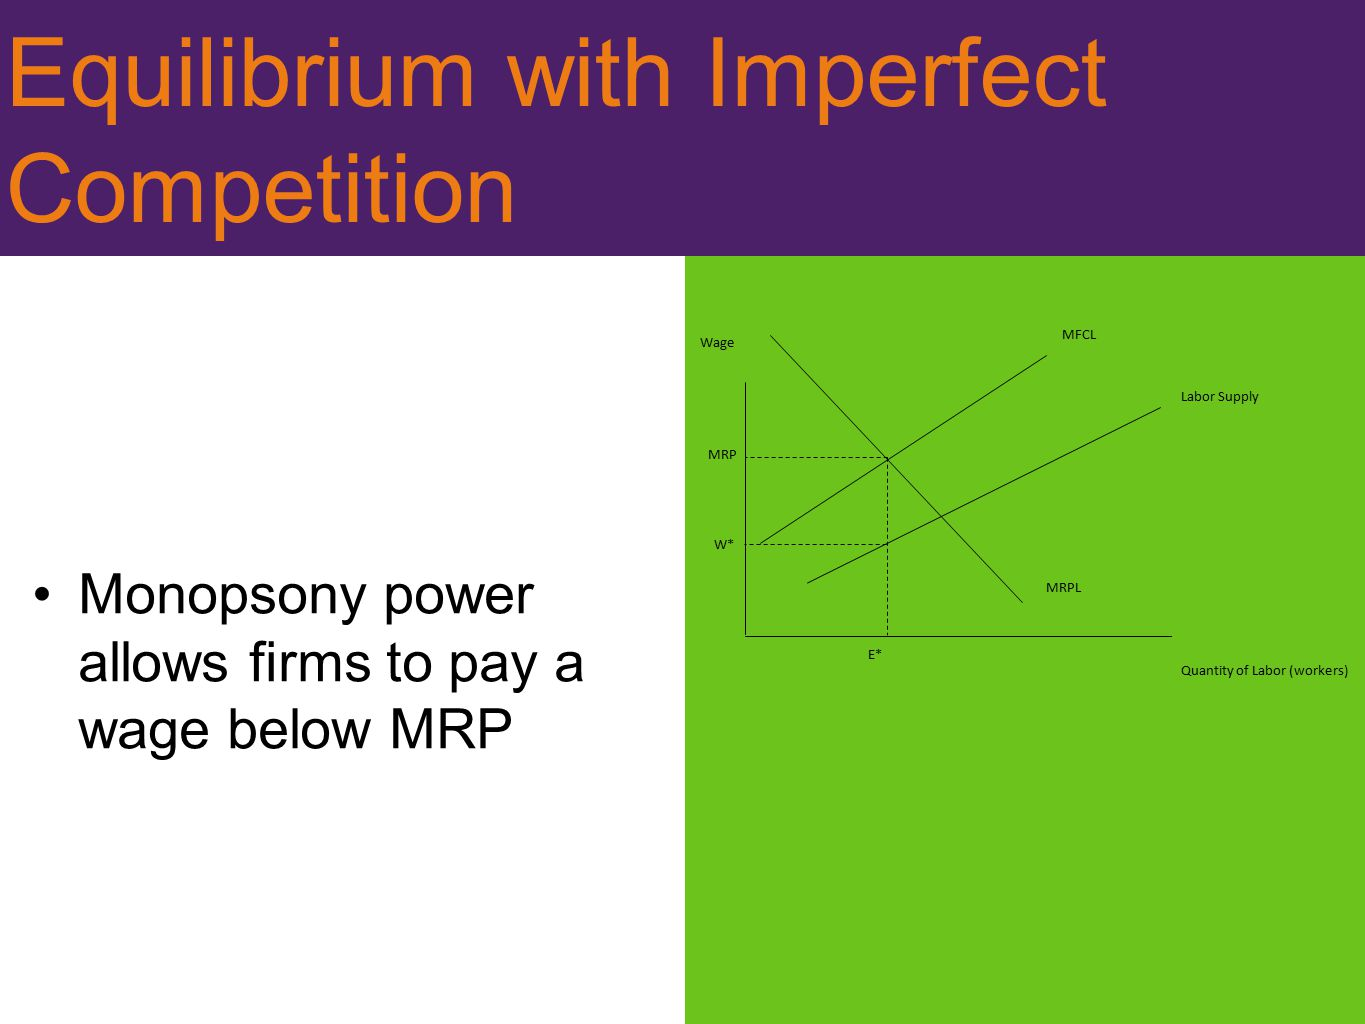 Equilibrium with Imperfect Competition